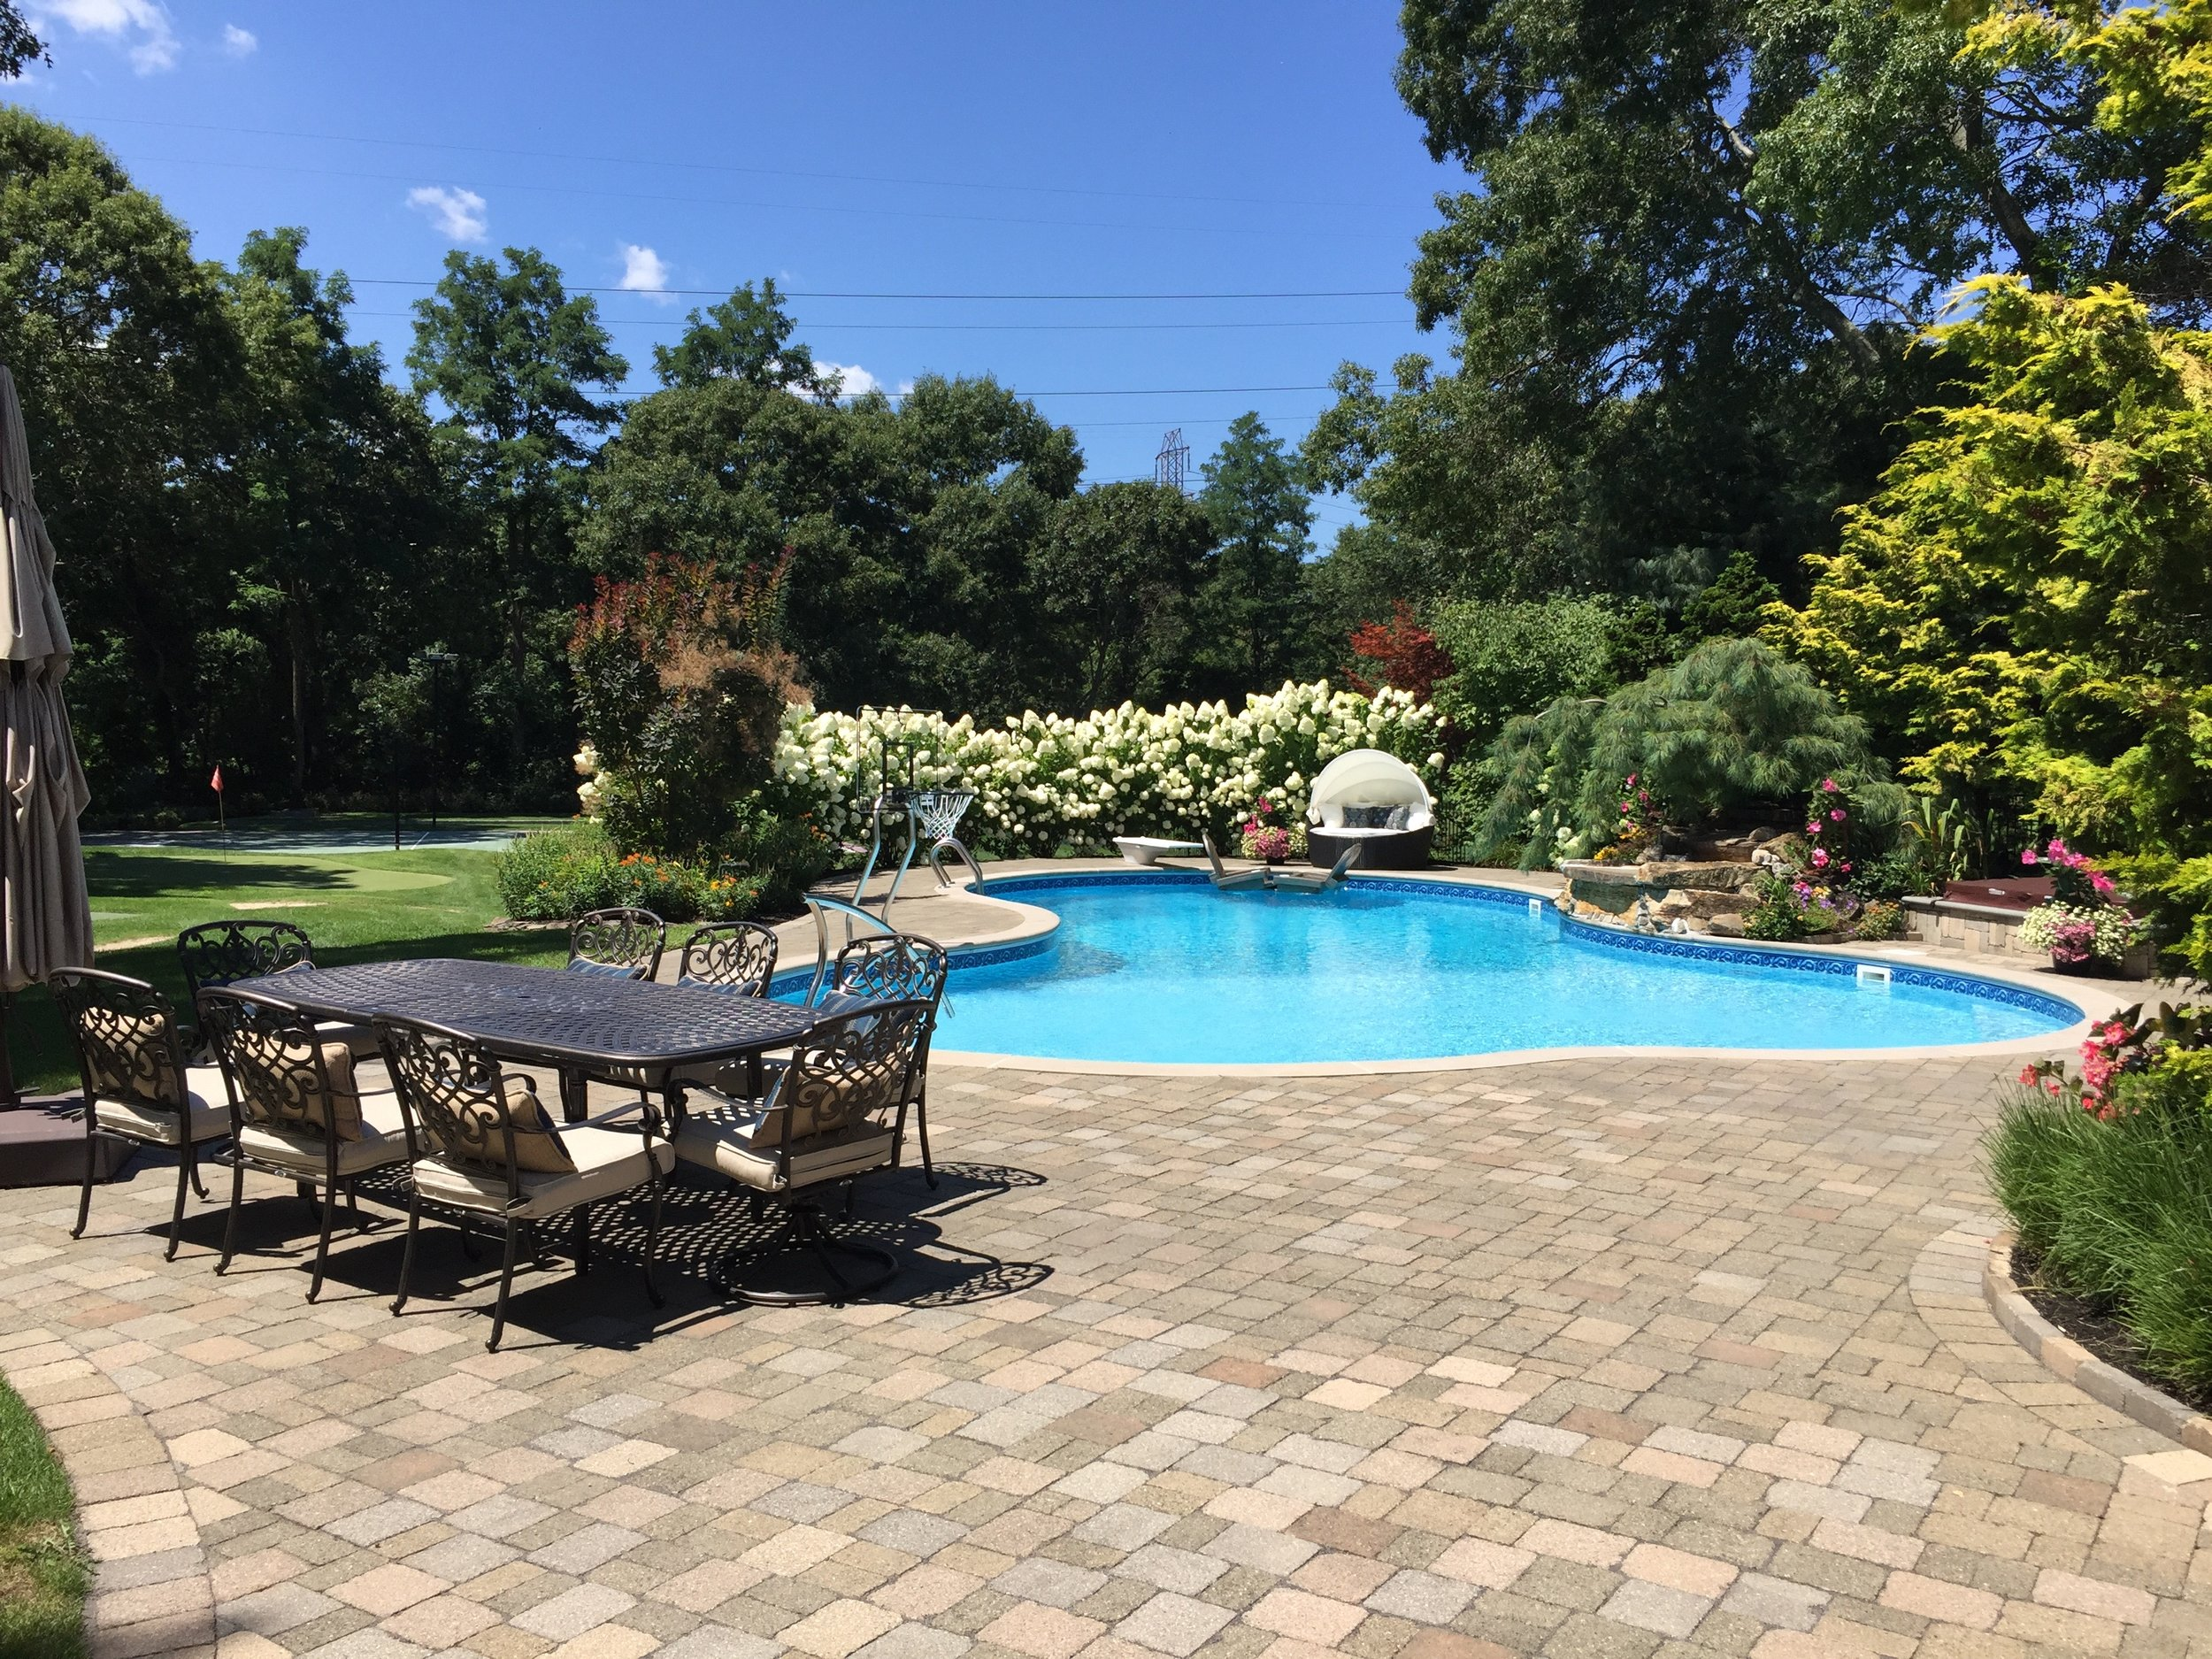 Top planting design company in Long Island, NY